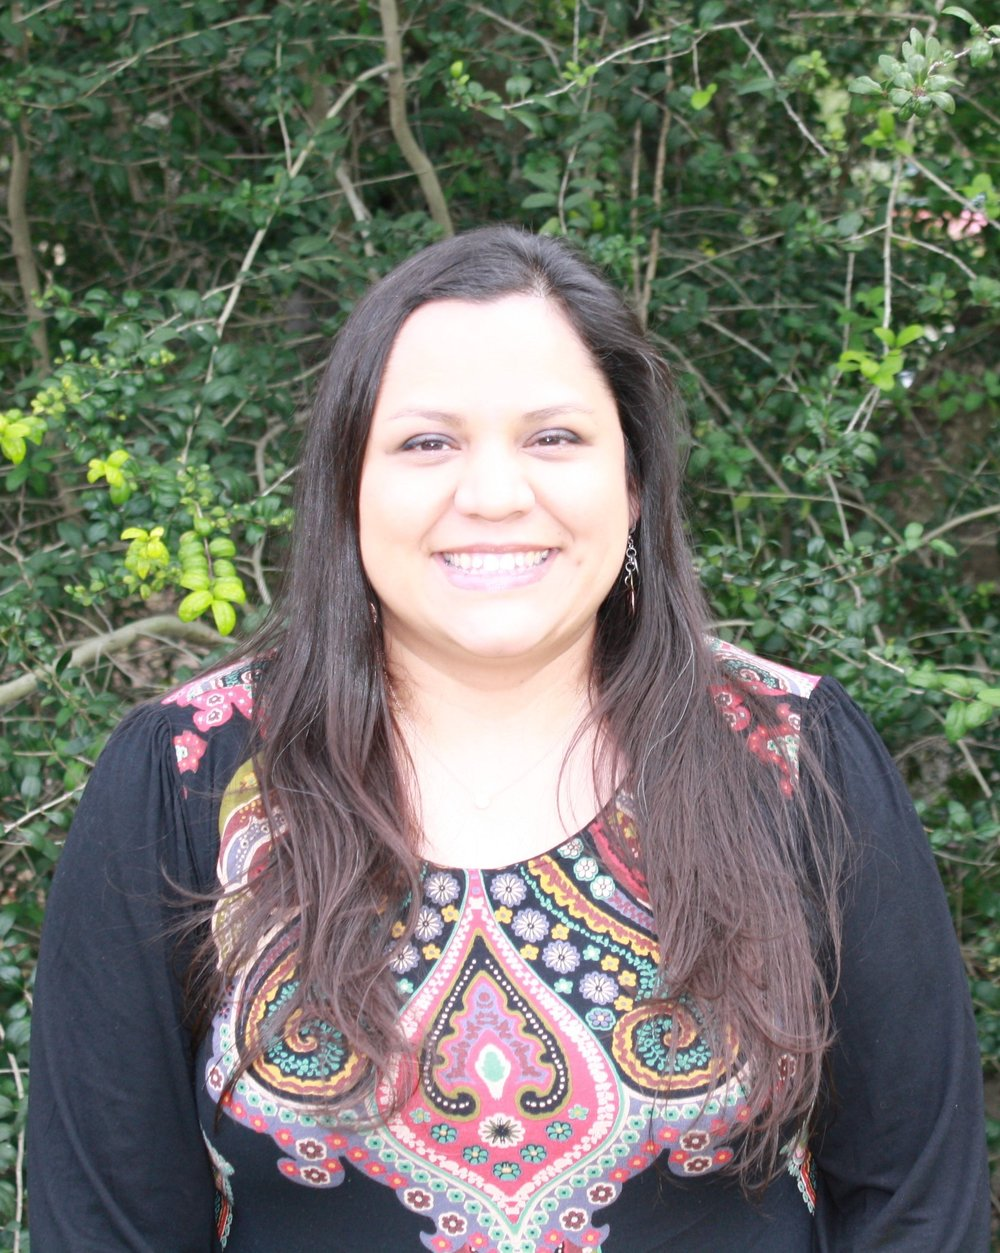 Roxane Marines, MA, LPC, RPT - Roxane Marines is a Licensed Professional Counselor (LPC) and Registered Play Therapist (RPT). Roxane has been a mental health professional for over 12 years and has worked in a variety of settings with clients of all ages including very young children, adolescents, adults, families, and elderly. Roxane obtained her Master of Arts degree in counseling at UTSA in 2006 while working with local children and families coping with disabilities, abuse/neglect, and domestic violence at three different local agencies concurrently. Her undergraduate work in Psychology included participation in a literacy research study with local middle school students. Over recent years Roxane has provided mental health assessment and consultation to families involved in local community programs and schools including Head Start, Early Childhood Intervention, Early Head Start, and local independent school districts. Roxane specializes in relational, family, and parenting issues helping families cope with anxiety, trauma, adjustment disorders, autism, special needs, and communication and behavioral disorders such as ADHD. Roxane believes that the human spirit can achieve healing and change in an environment that is nurturing, genuine, and accepting of every person as a unique and important individual.